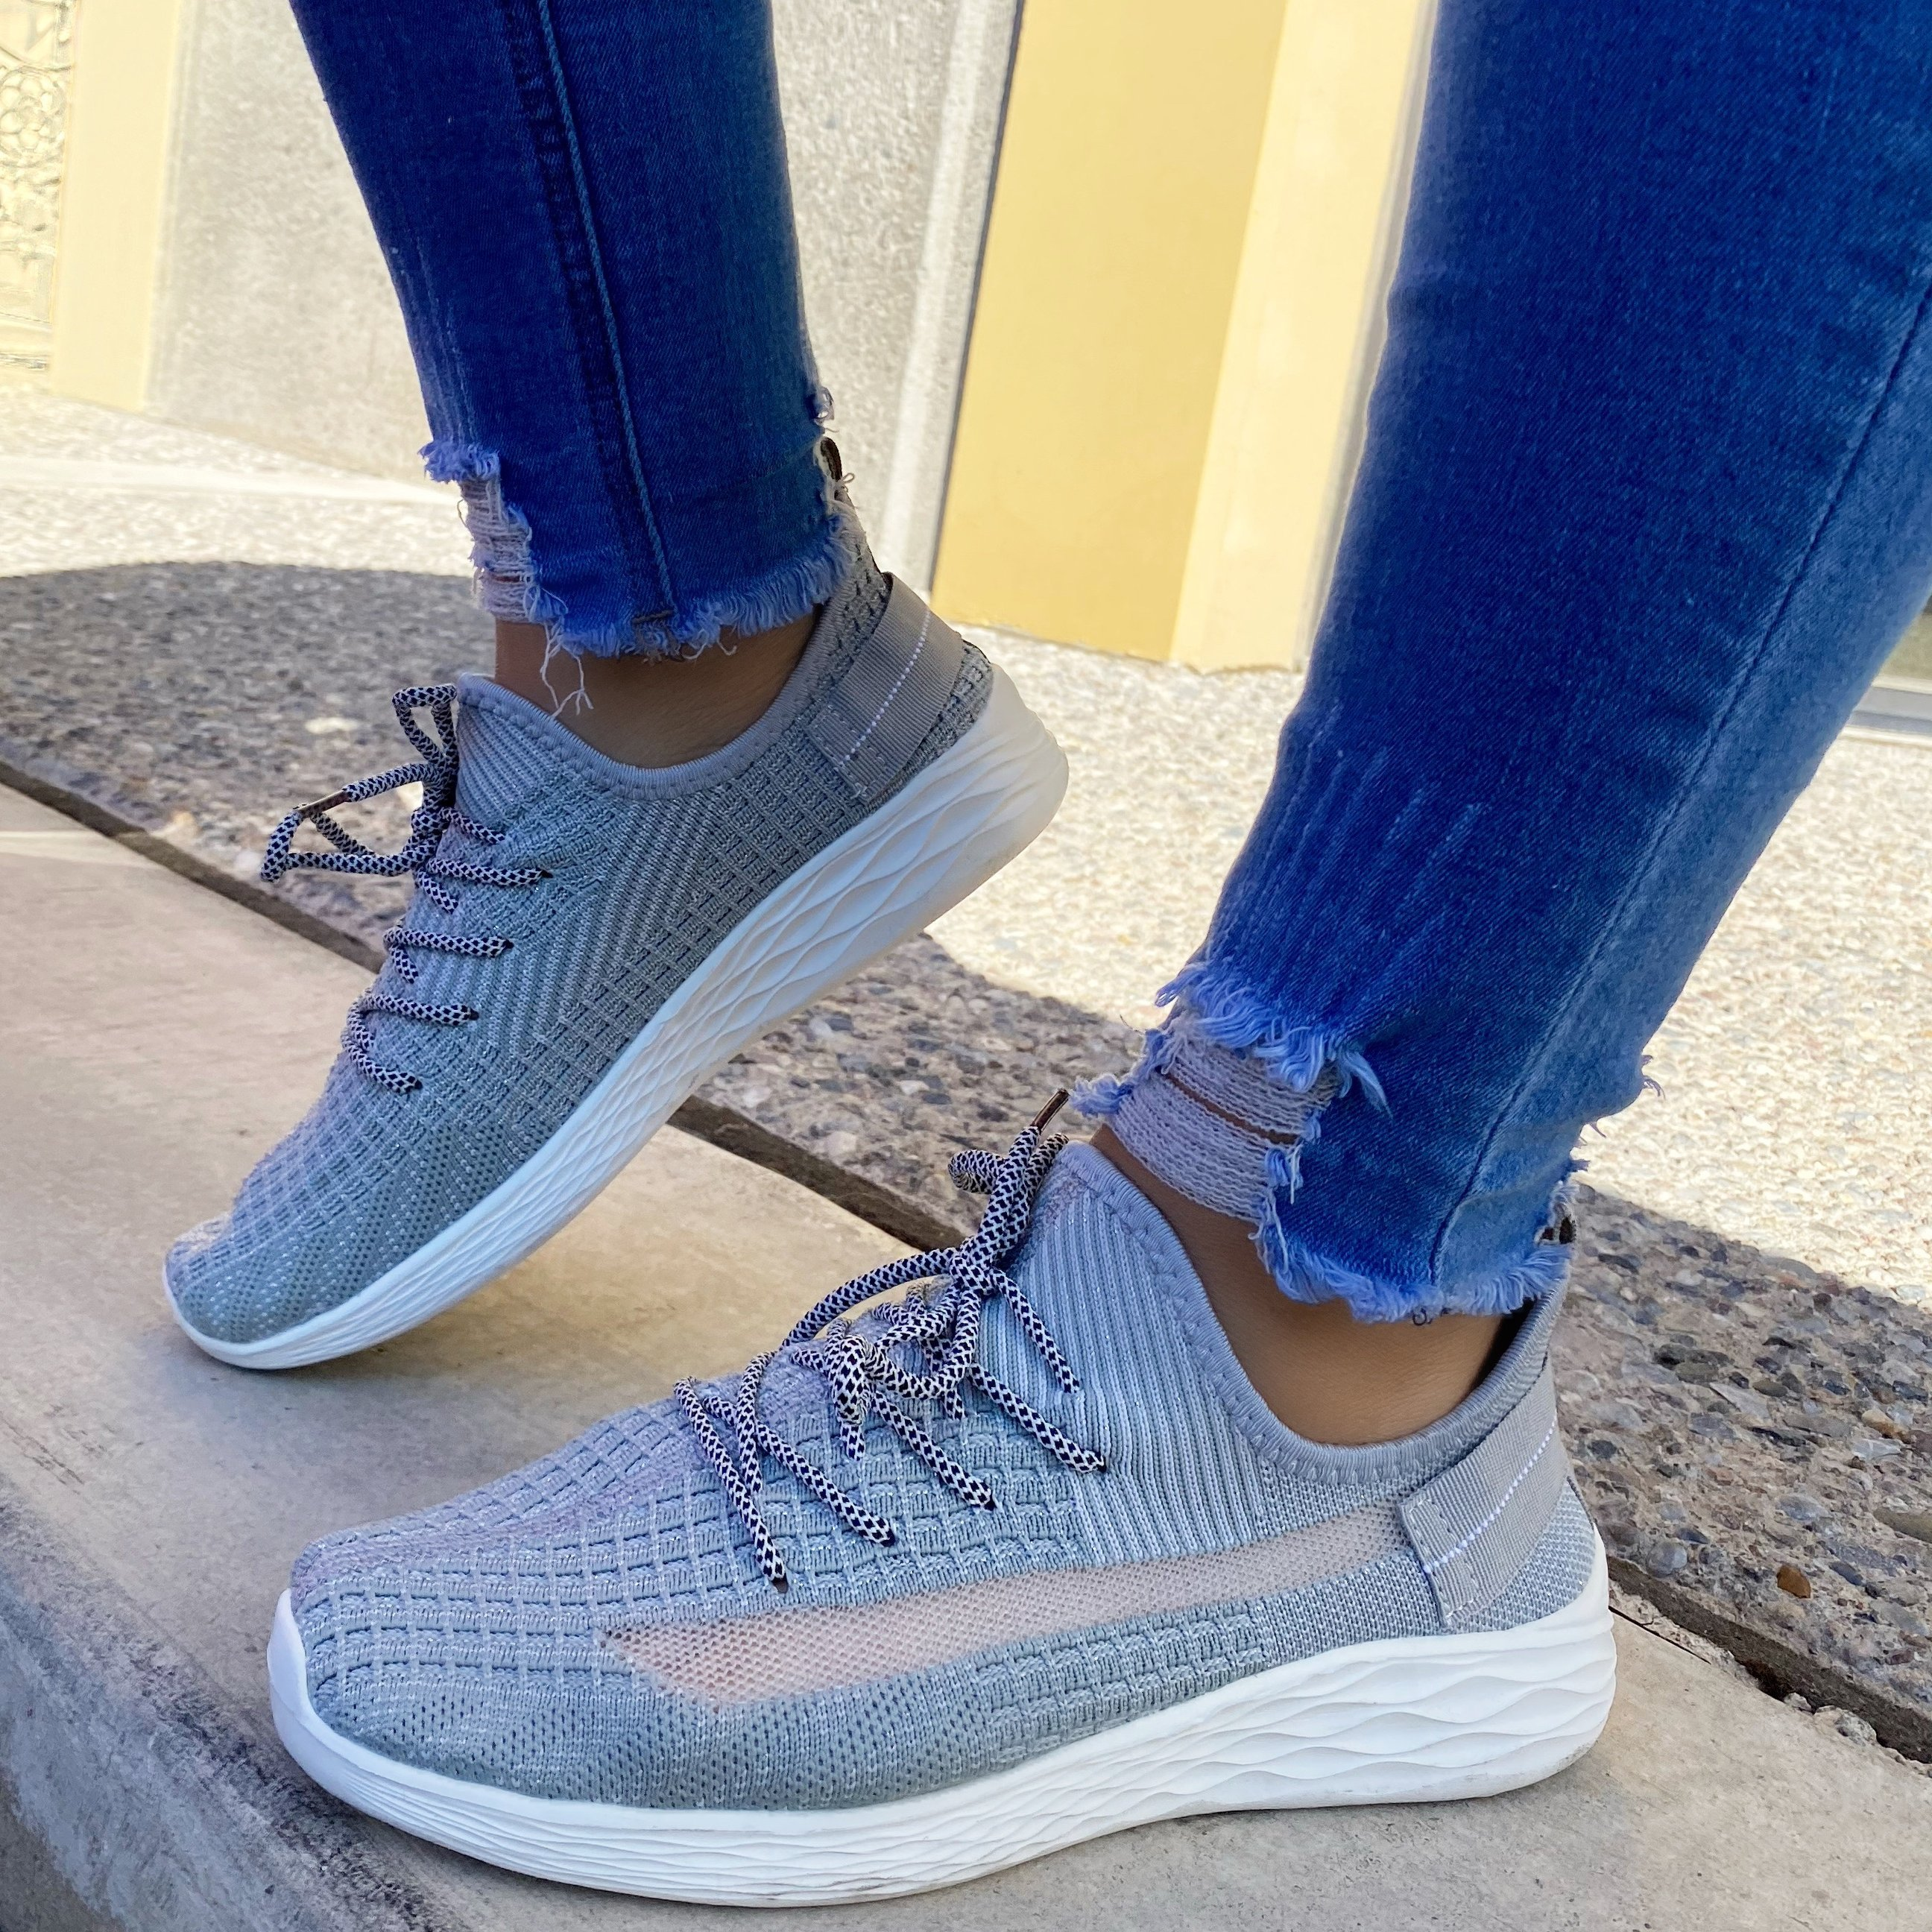 zoeyootd Sporty Breathable Lace-Up Sneakers